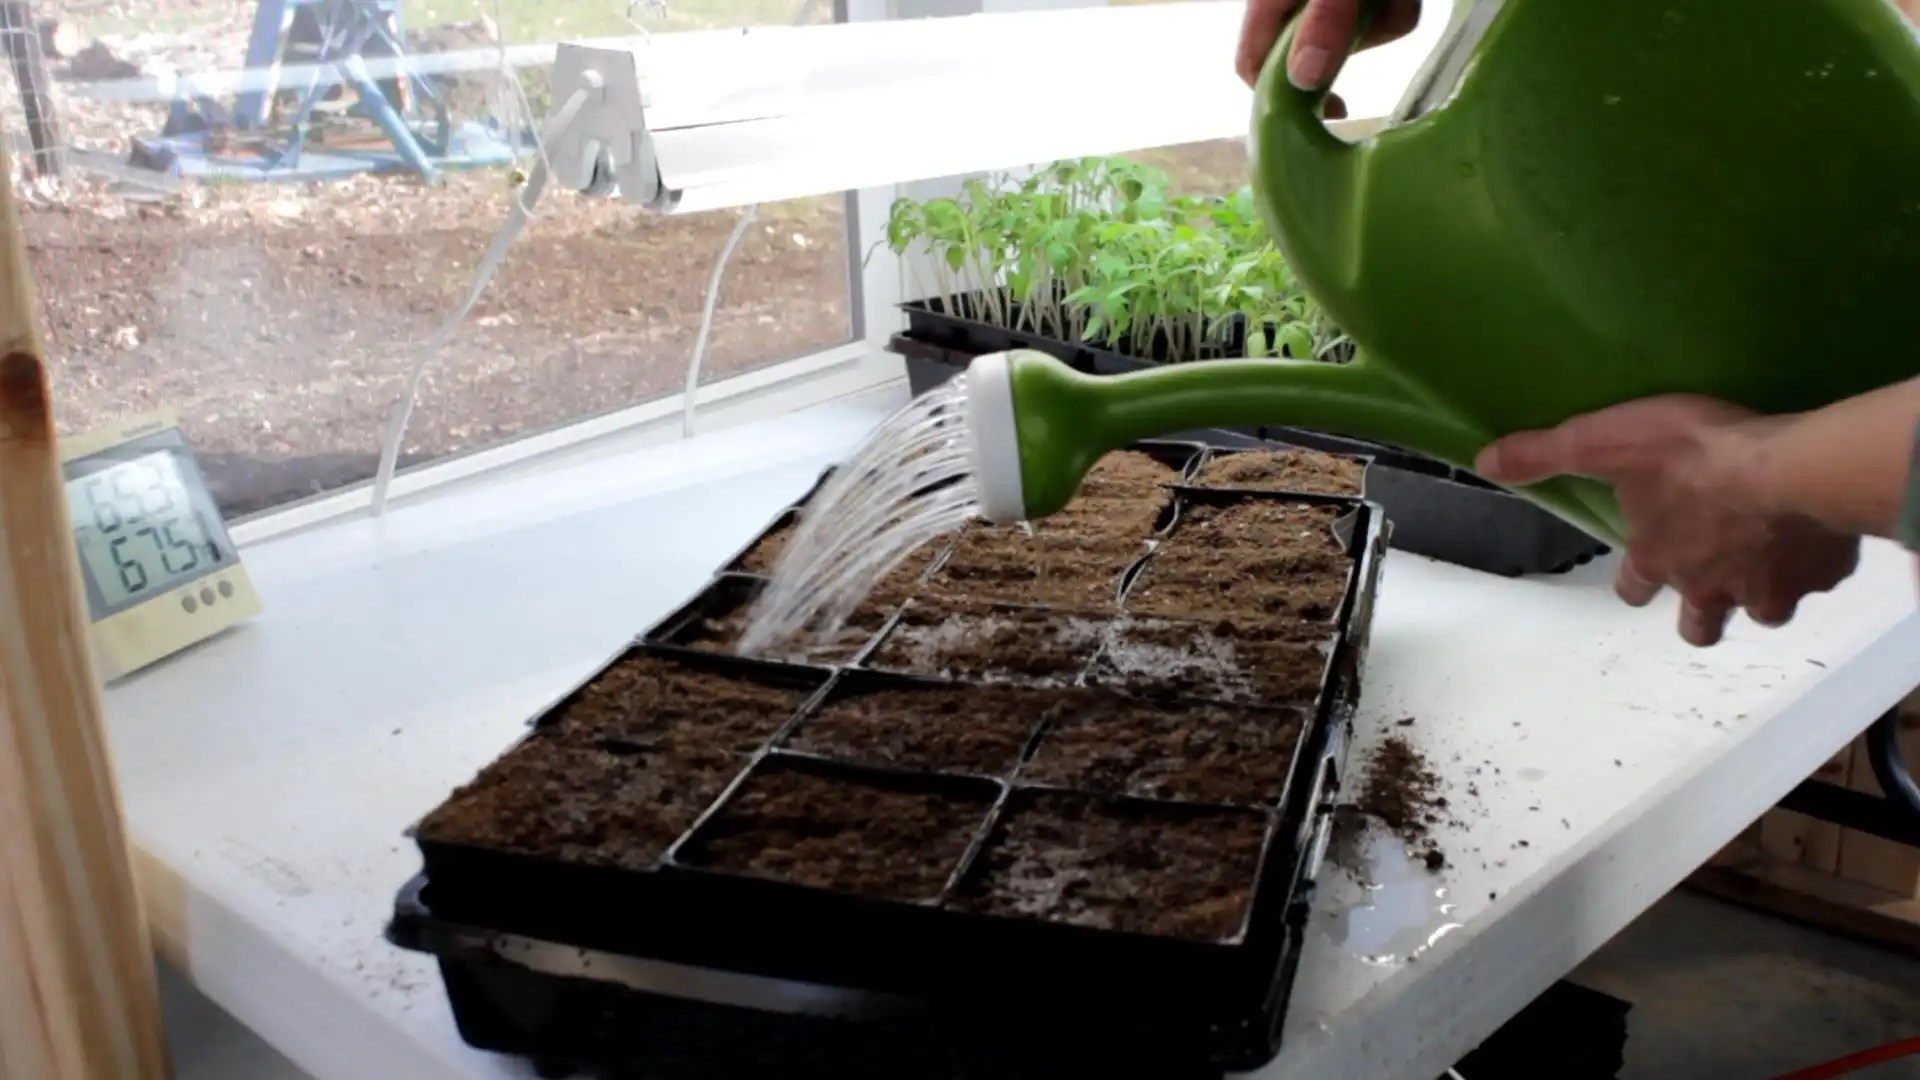 Transplanting seedlings is easy and helps your plants grow healthier